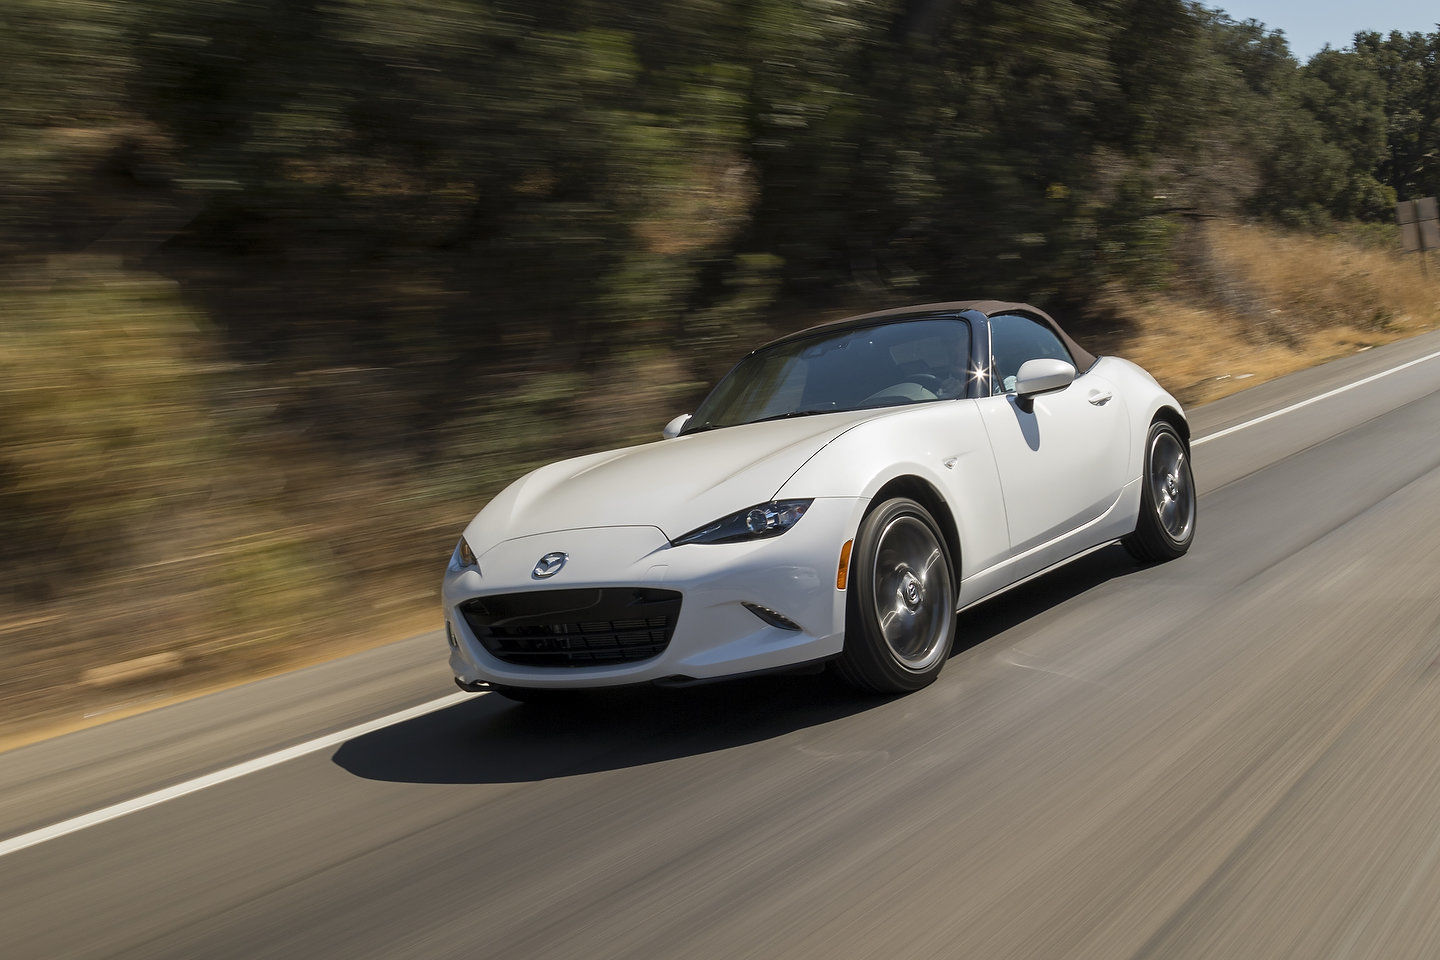 2019 Mazda MX-5: Everything You Need